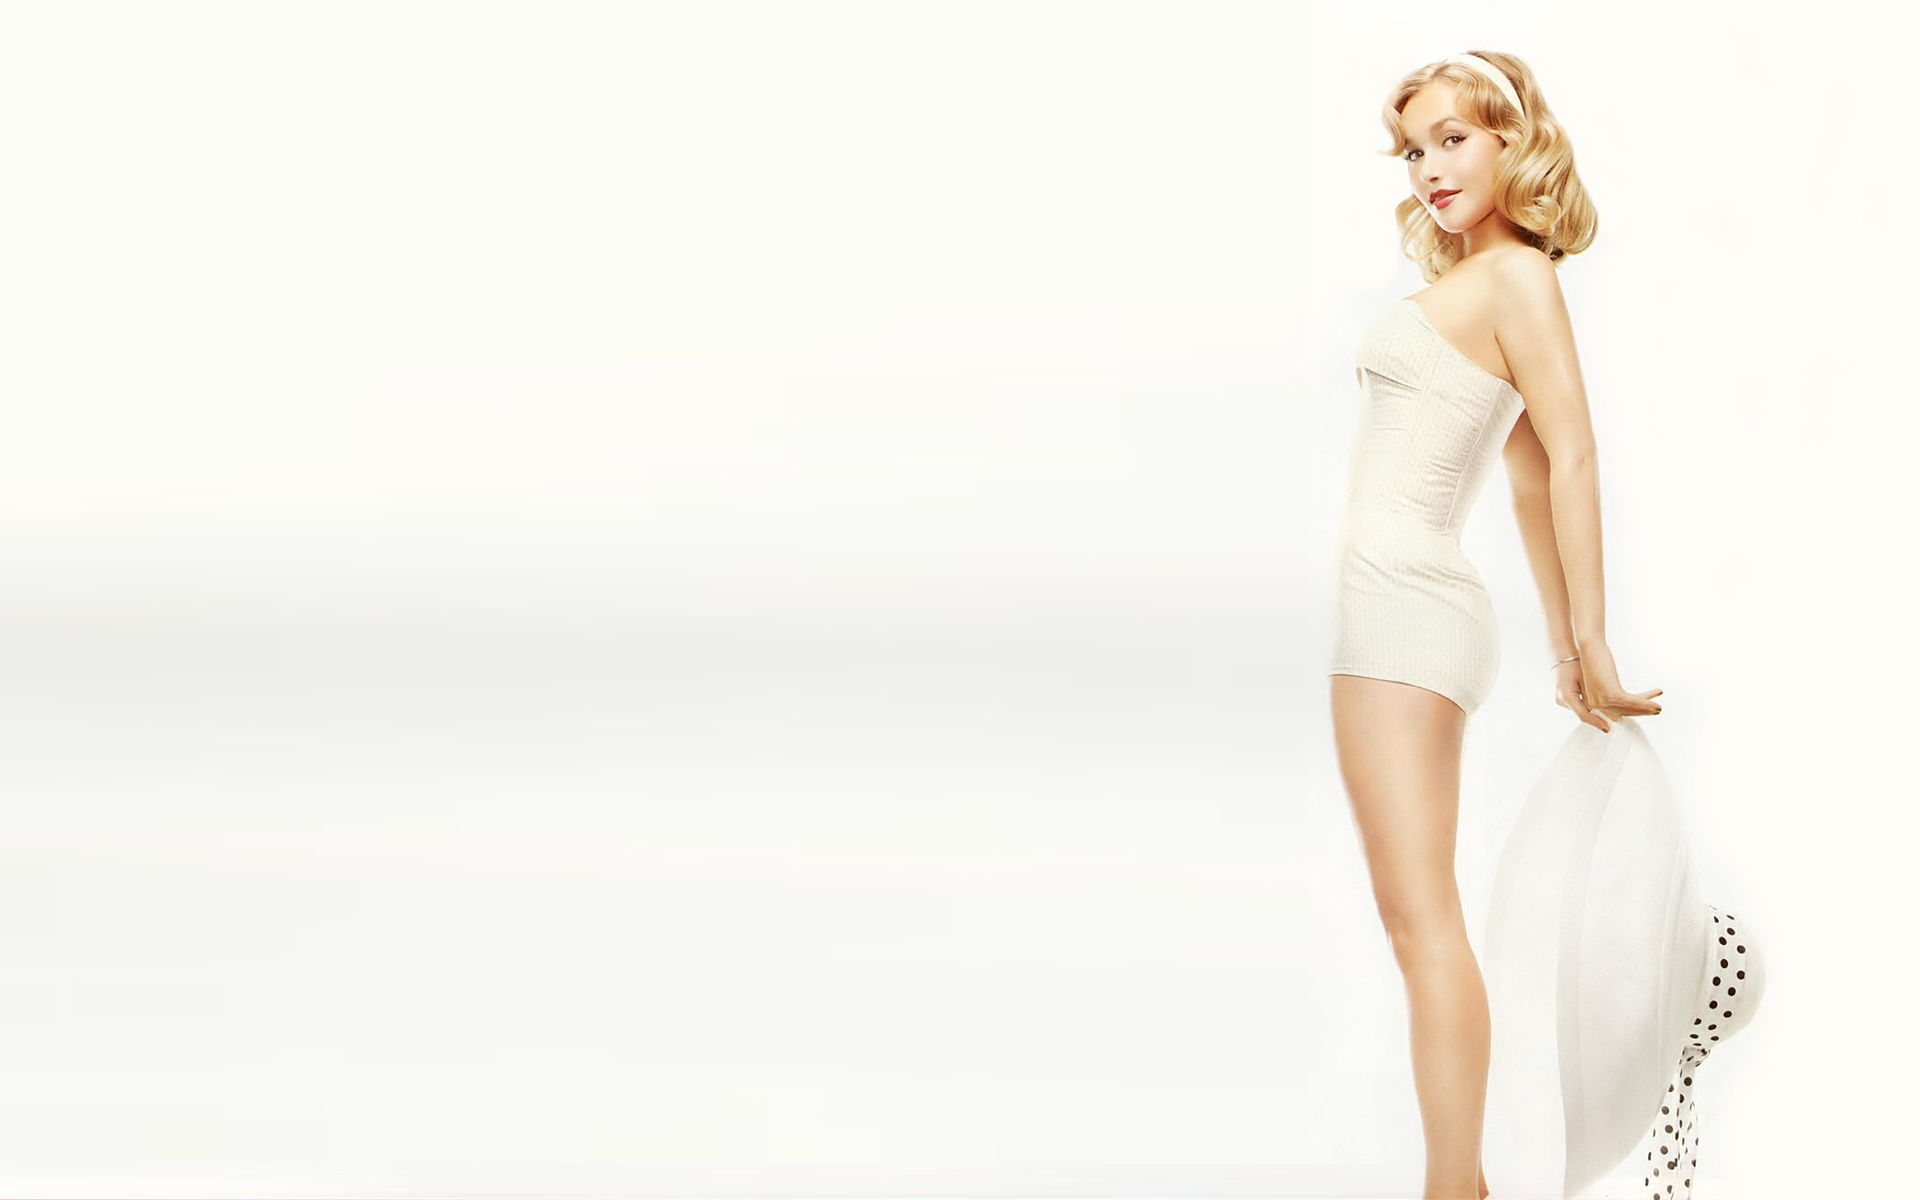 Hayden Panettiere Wallpapers, Pictures, Images